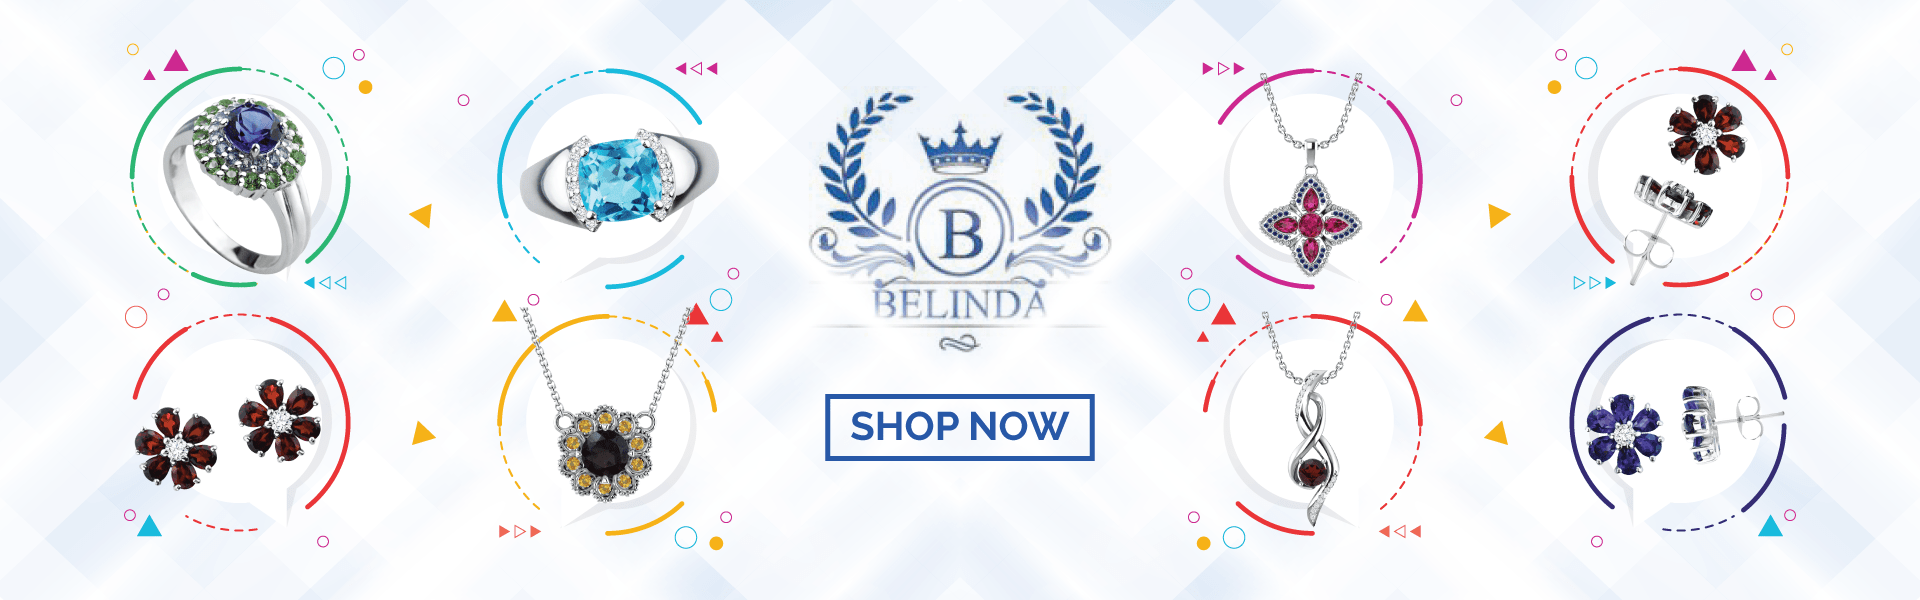 belinda jewelz summer collection banner for flower jewelry